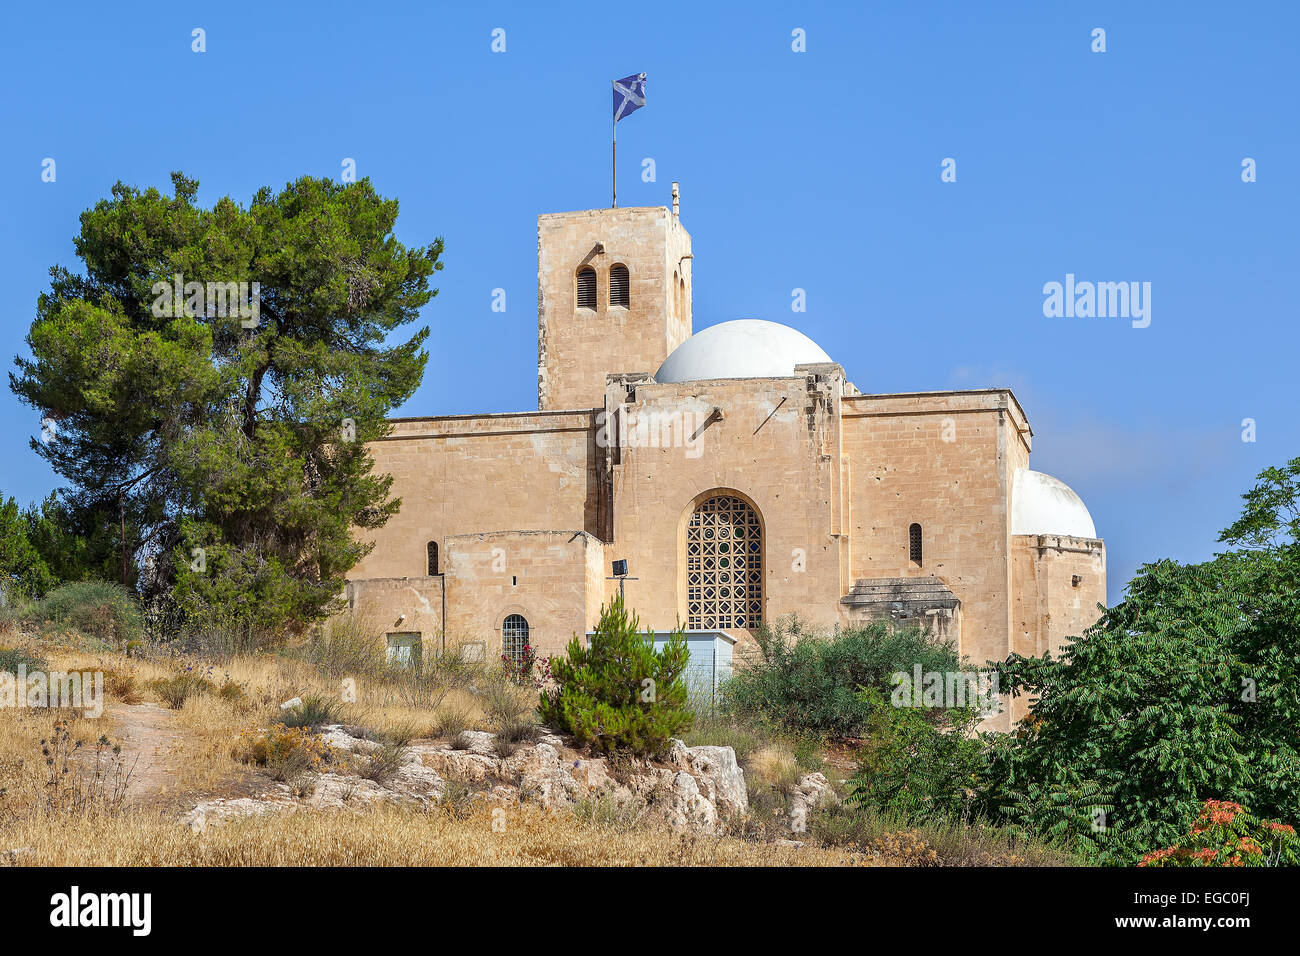 View of St Andrew's Church in Jerusalem, Israel. Stock Photo